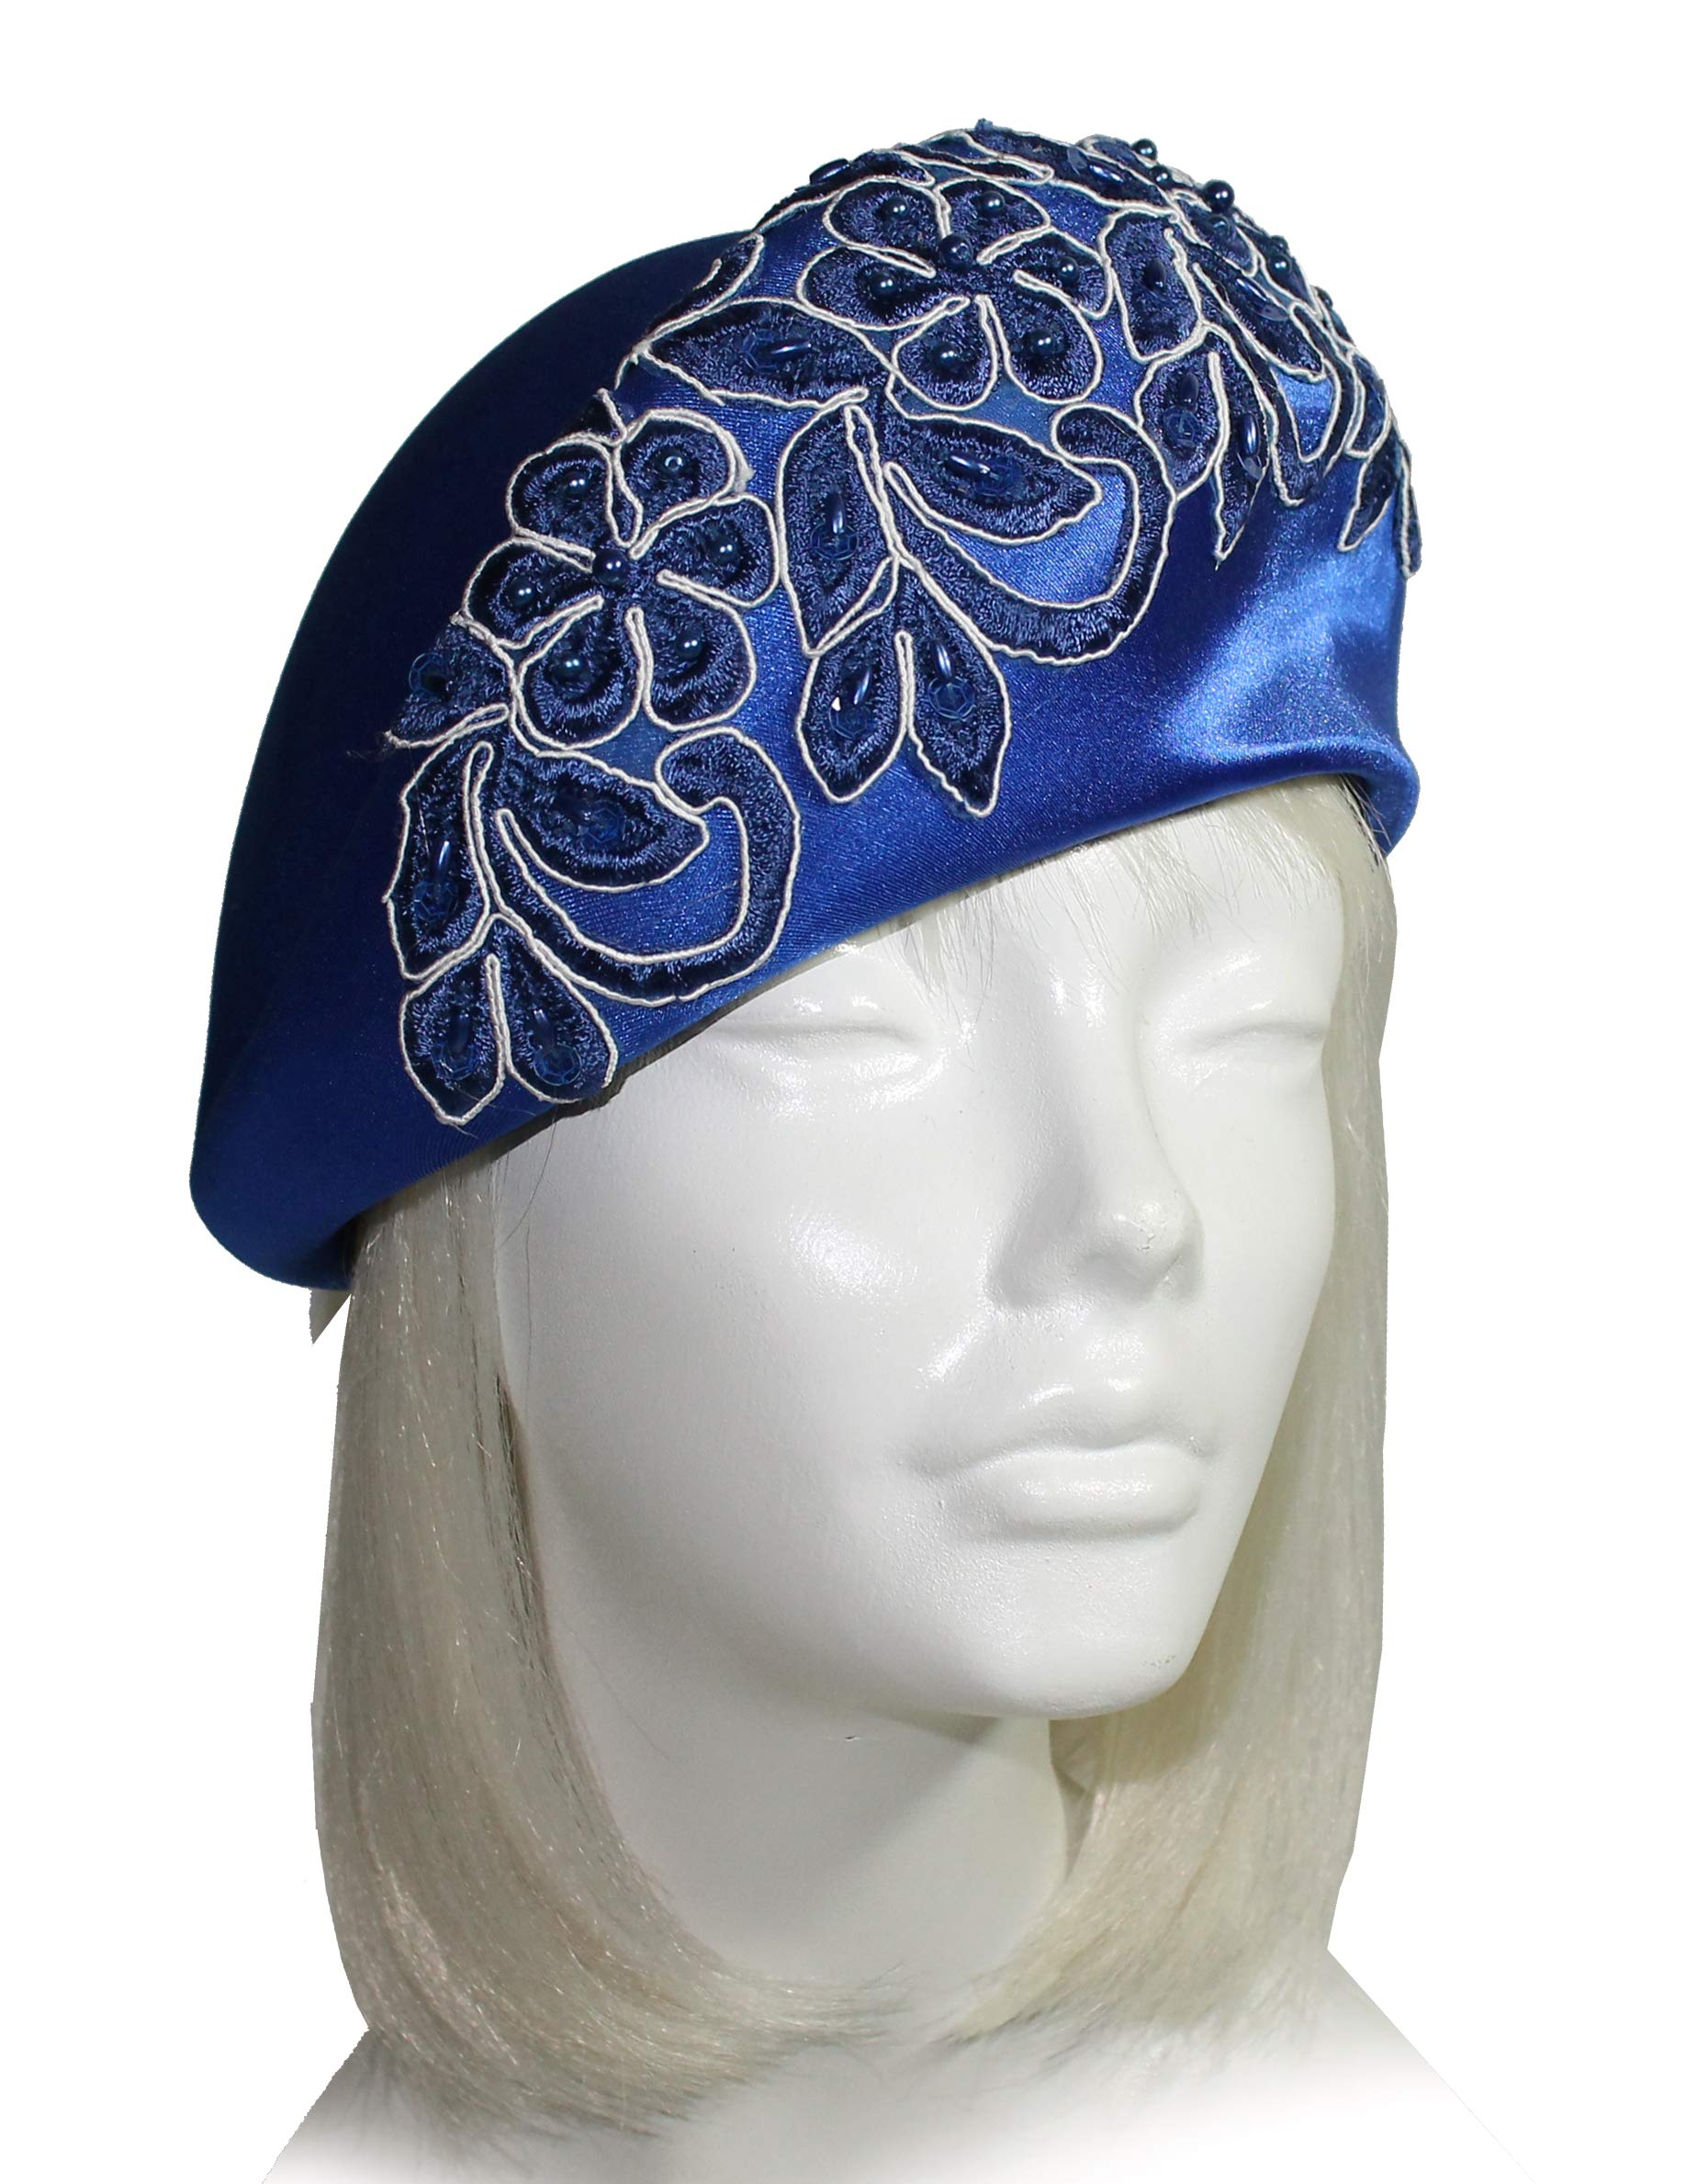 Mr. Song Millinery Satin Beret Cloche Hat with Premium Lace SH41 Sapphire Blue